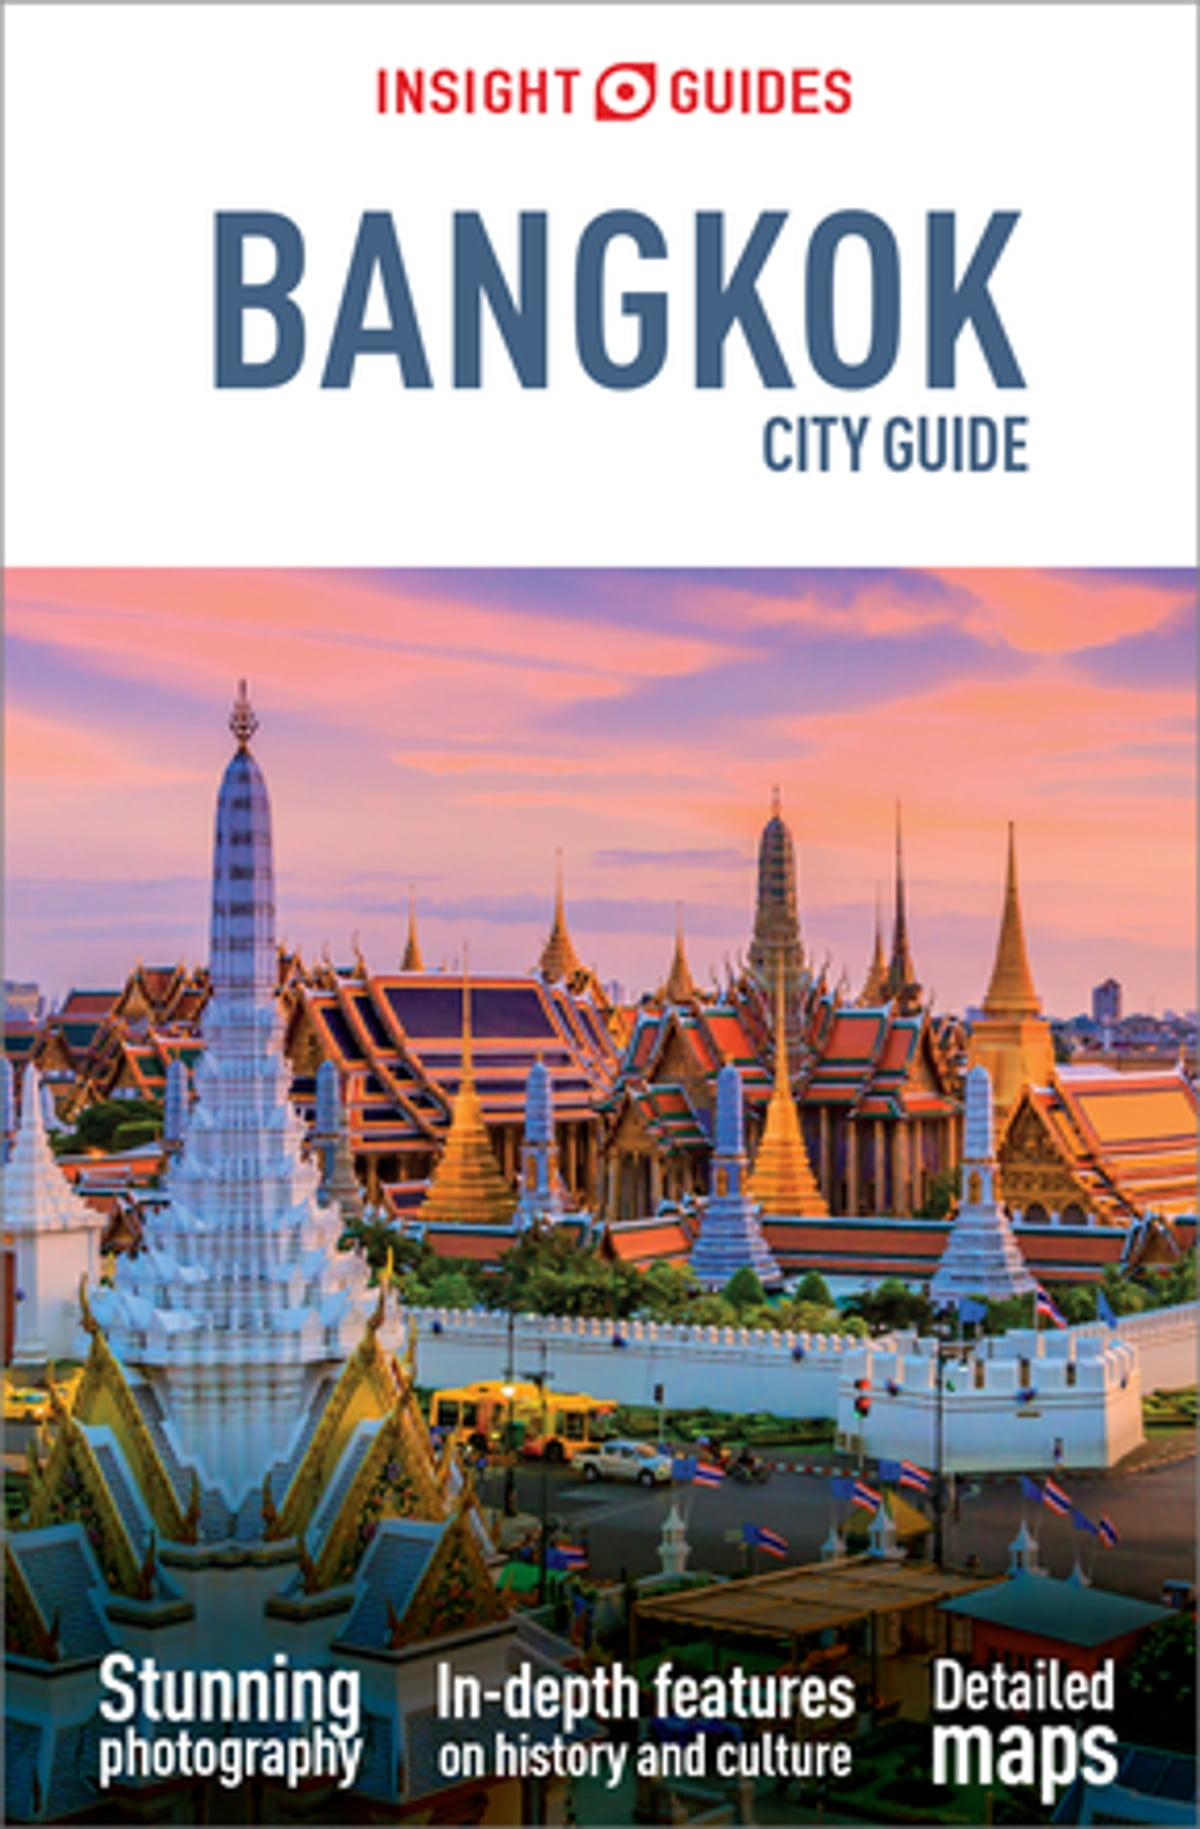 Insight Guides City Guide Bangkok eBook by Insight Guides - 9781786717252 |  Rakuten Kobo